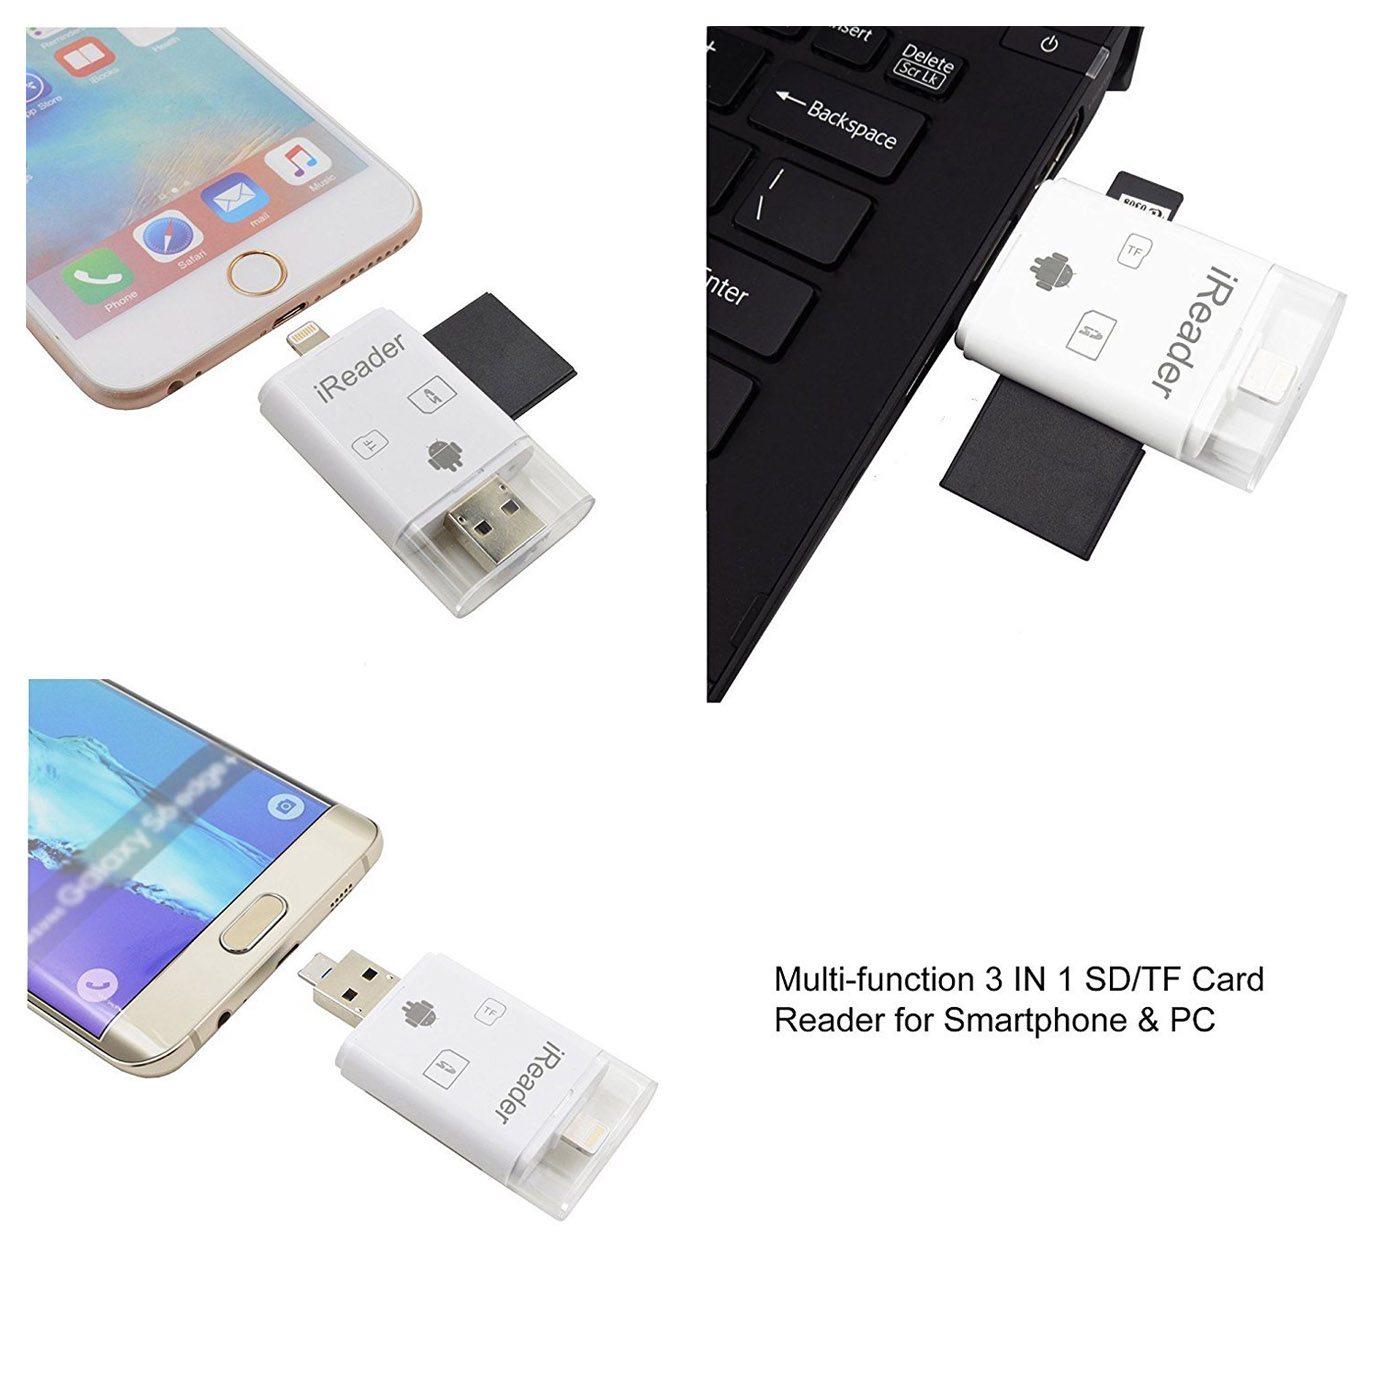 Multiple Card Reader Usb Otg Tf Micro Sd Sdhc Nic Nax Discount Iflash Device Hd Drive For Iphone Ipad Android Phone Computer